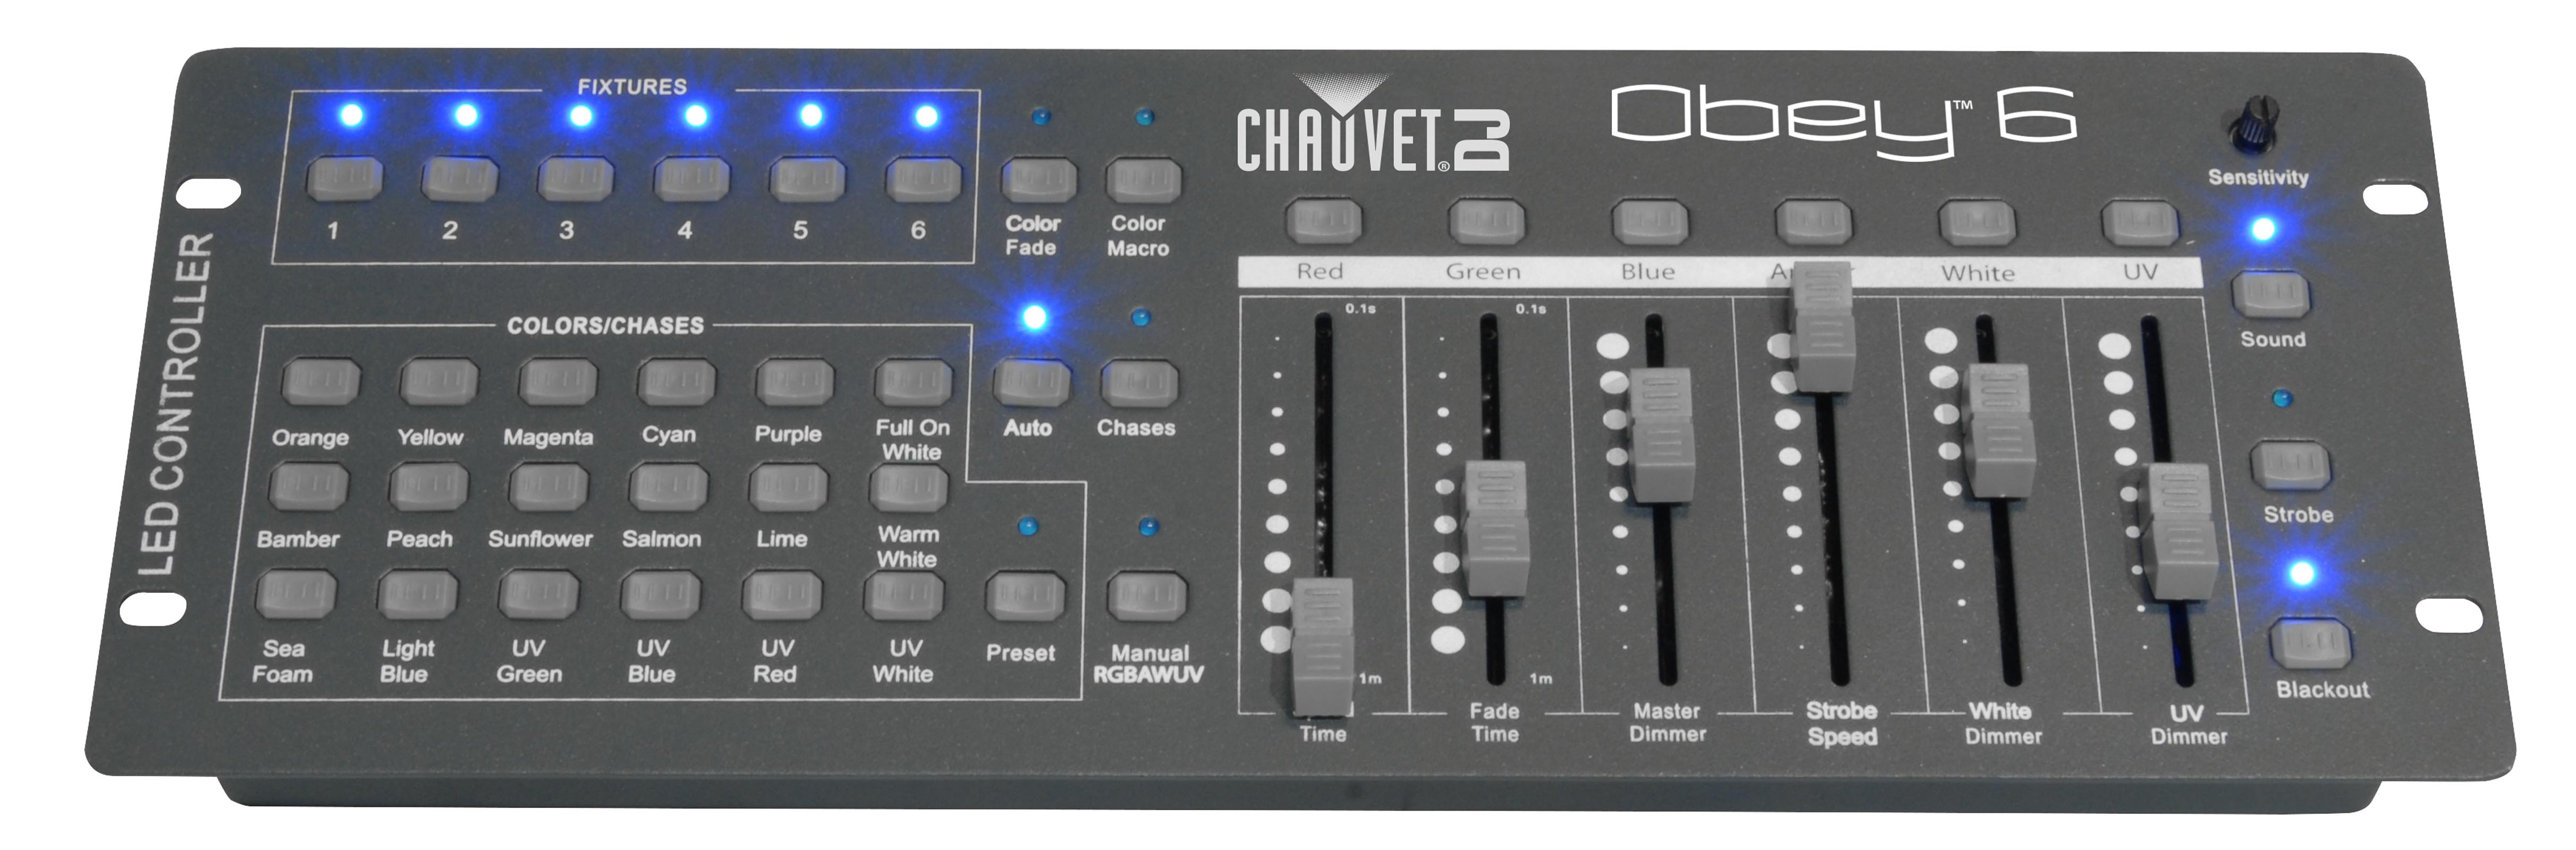 Chauvet OBEY 6 6-Channel DMX Universal DJ Lighting Controller | Up To 6 Fixtures by